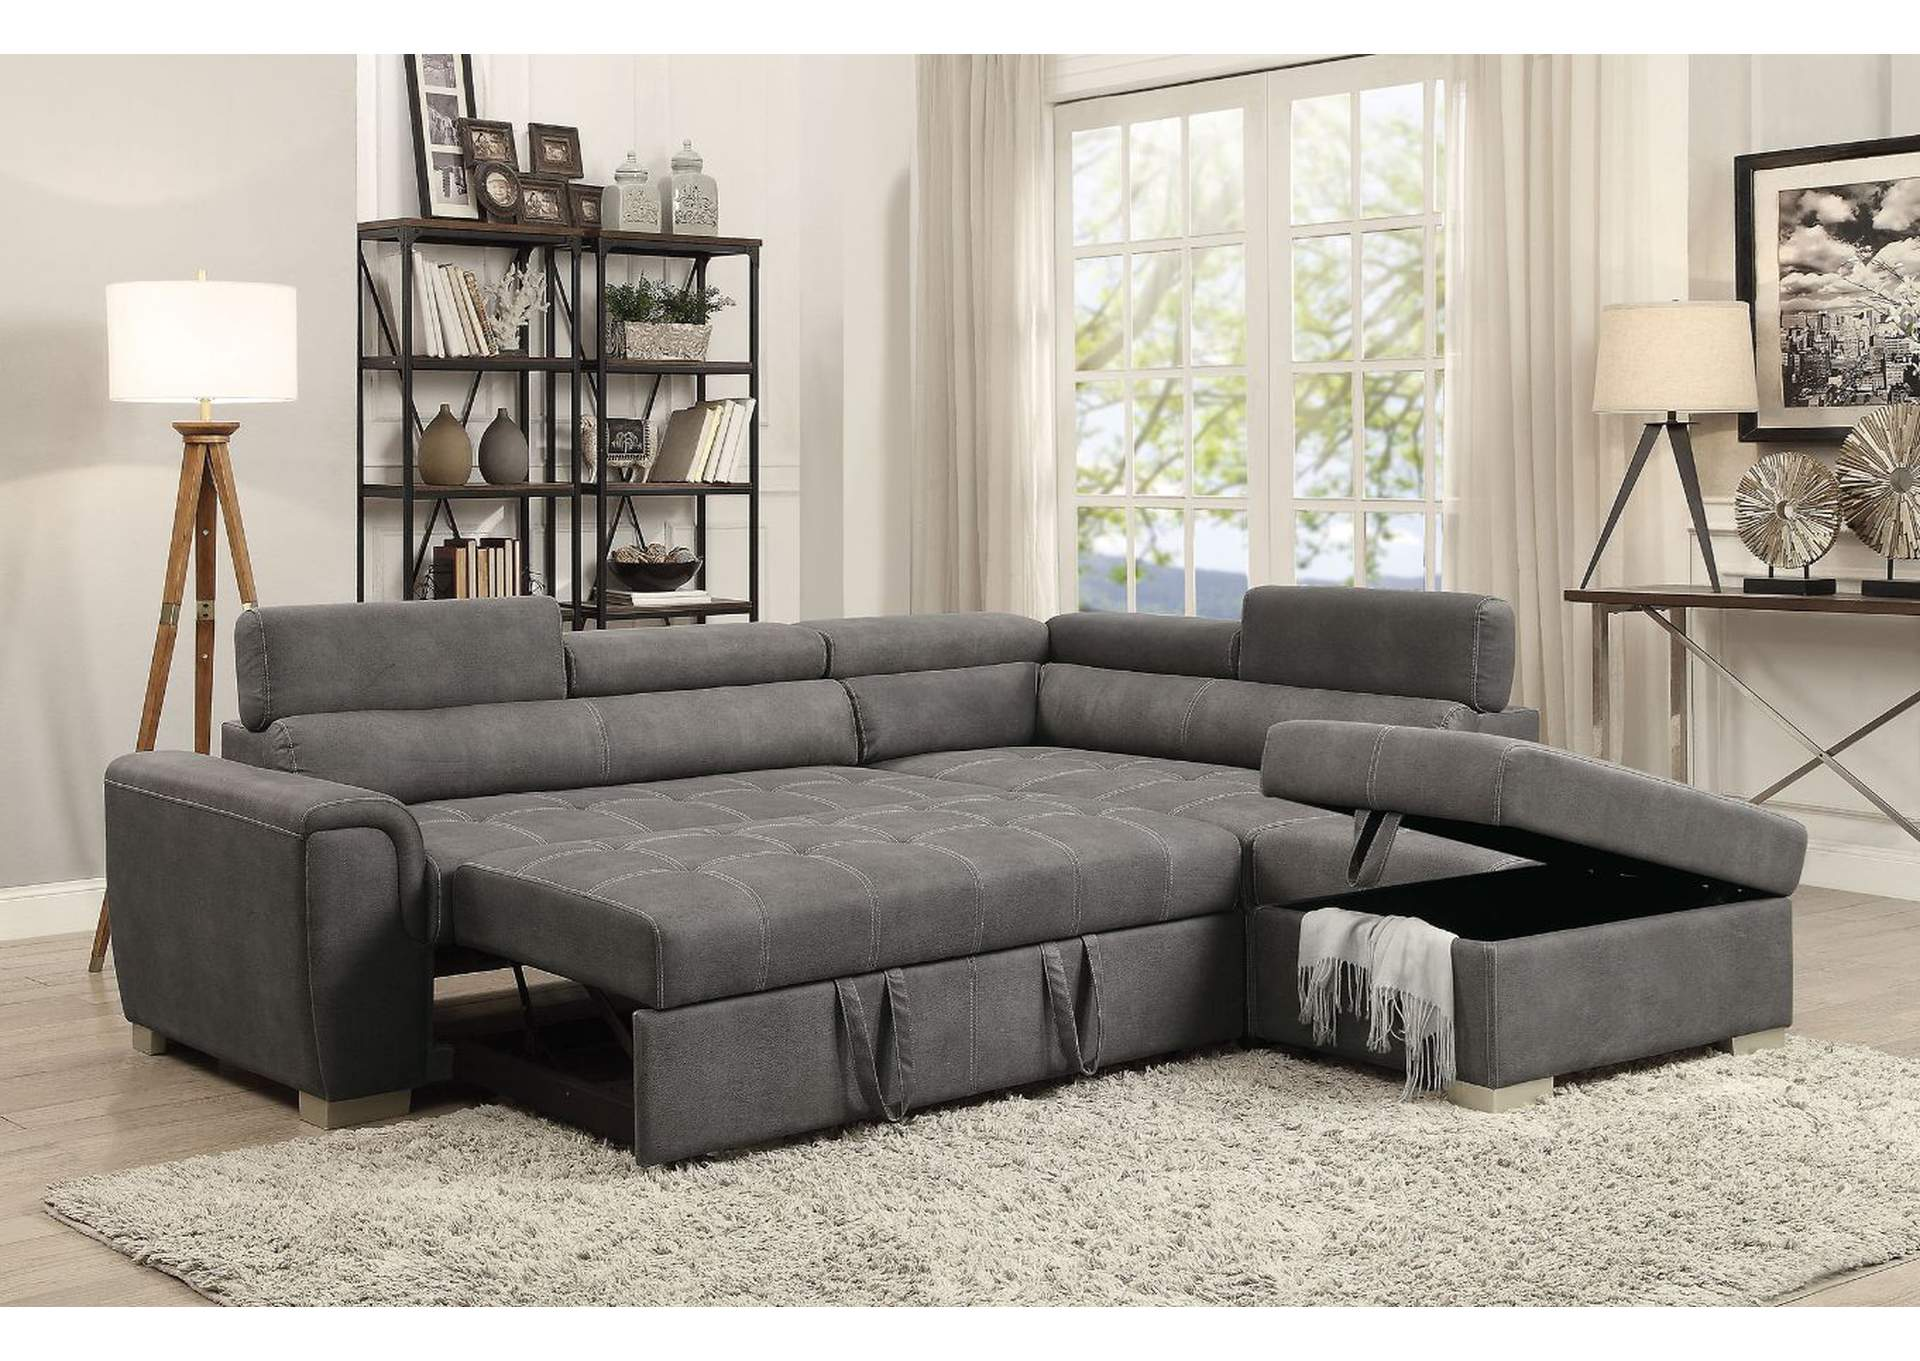 Best Buy Furniture and Mattress Thelma Gray Sectional ...